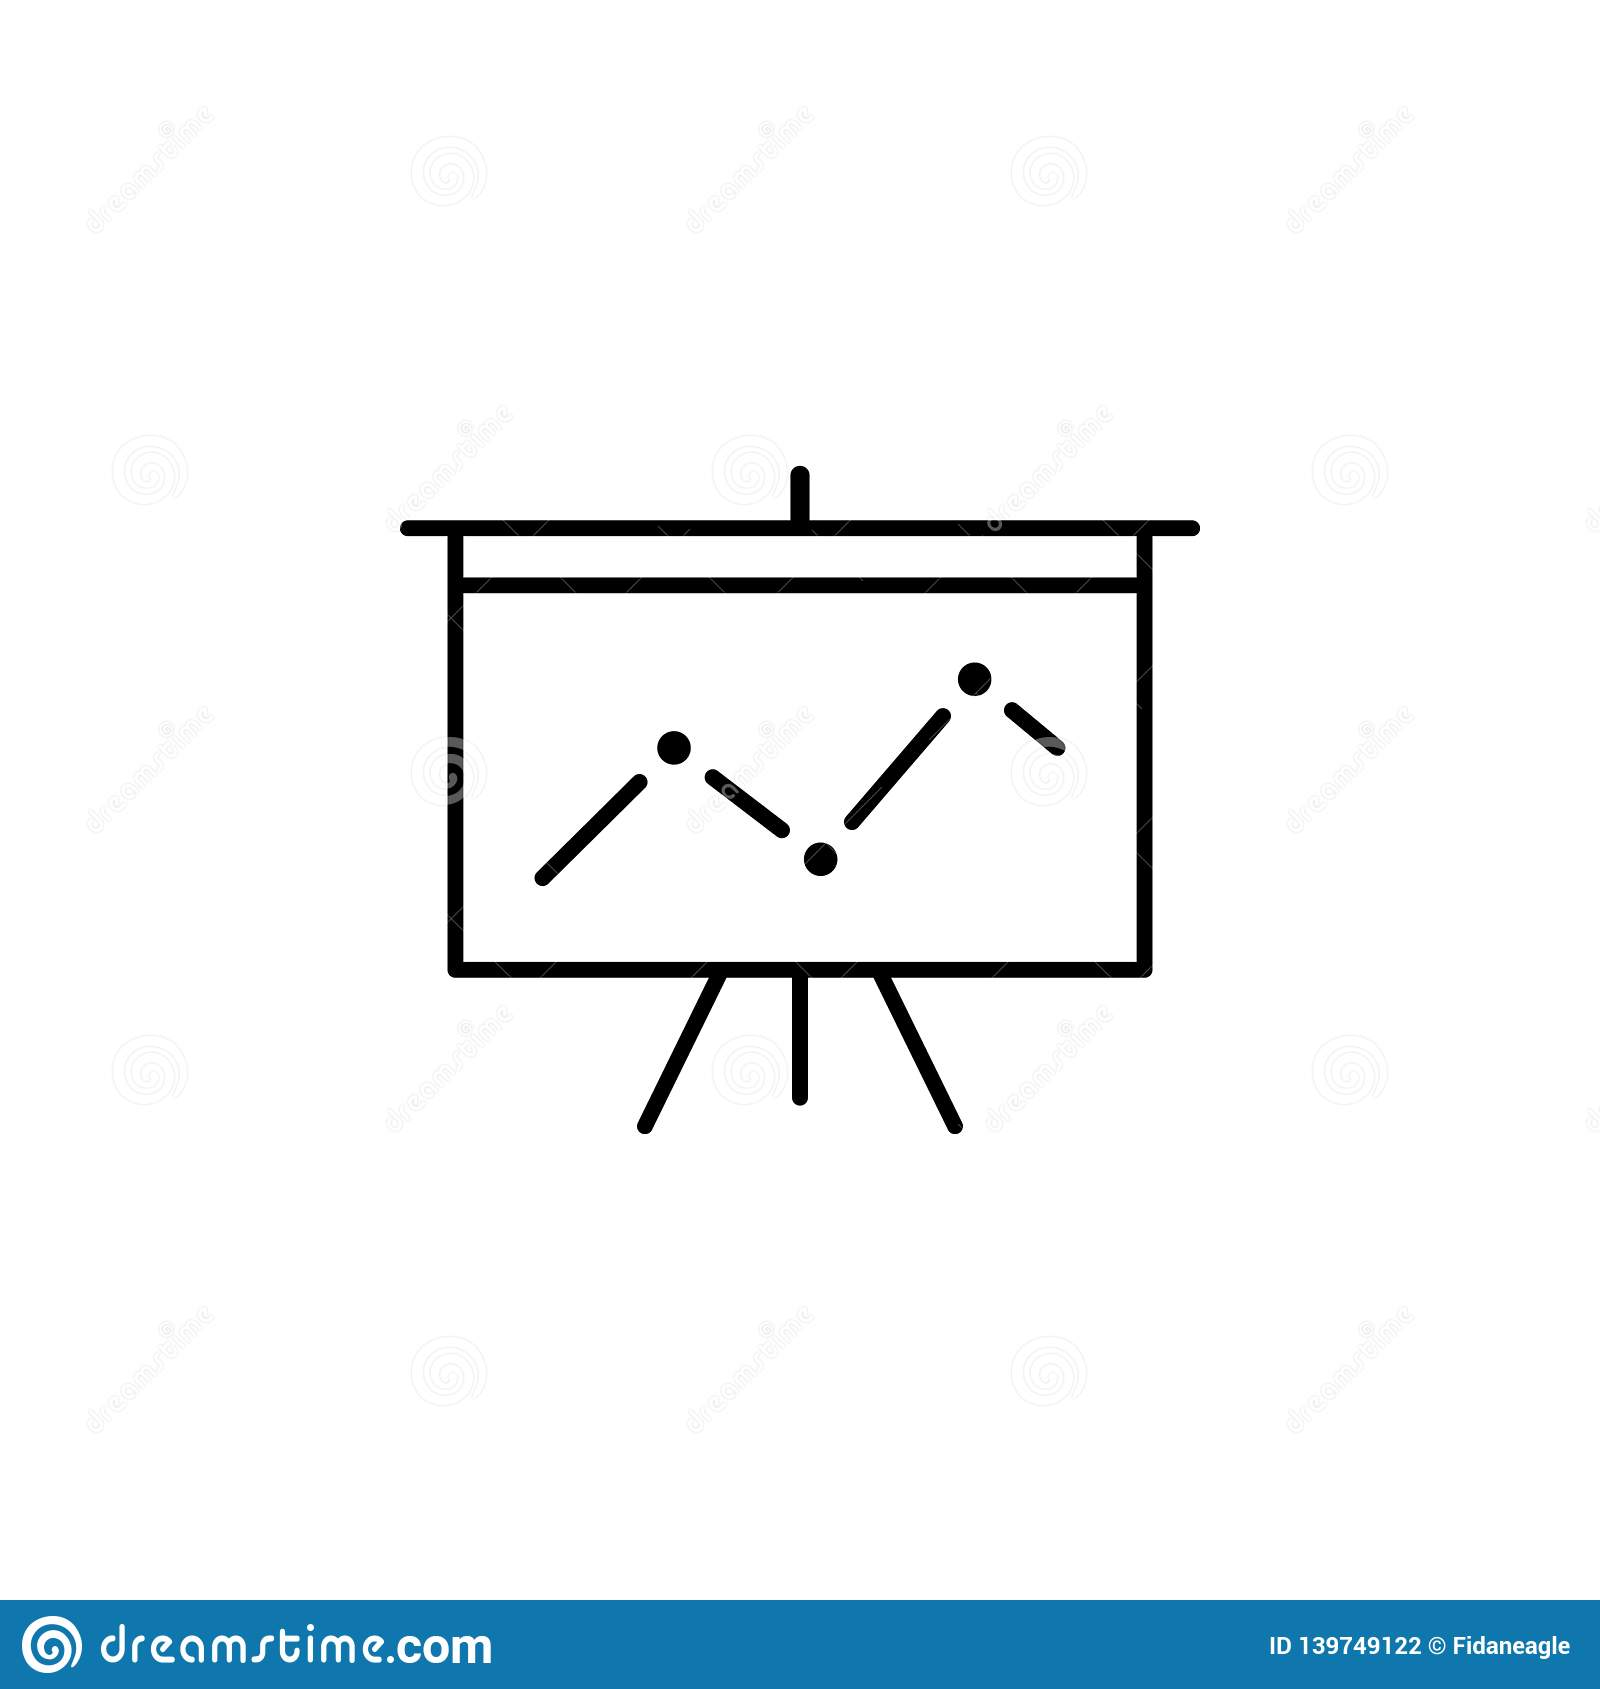 Deck presentation statistics outline icon. Signs and symbols can be used for web, logo, mobile app, UI, UX